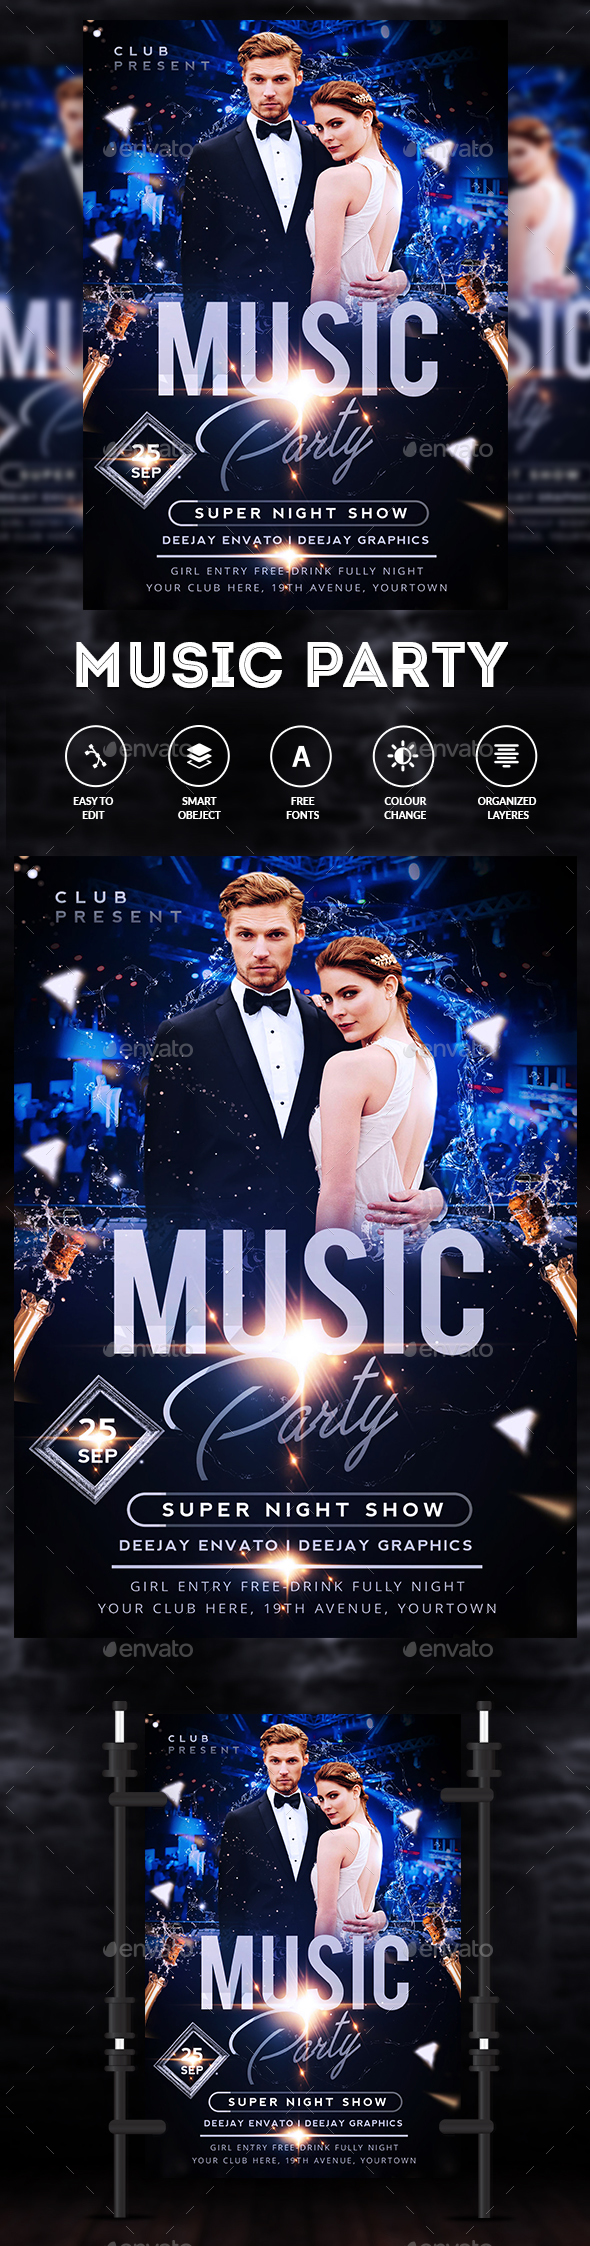 City Music Party Flyer - Clubs & Parties Events